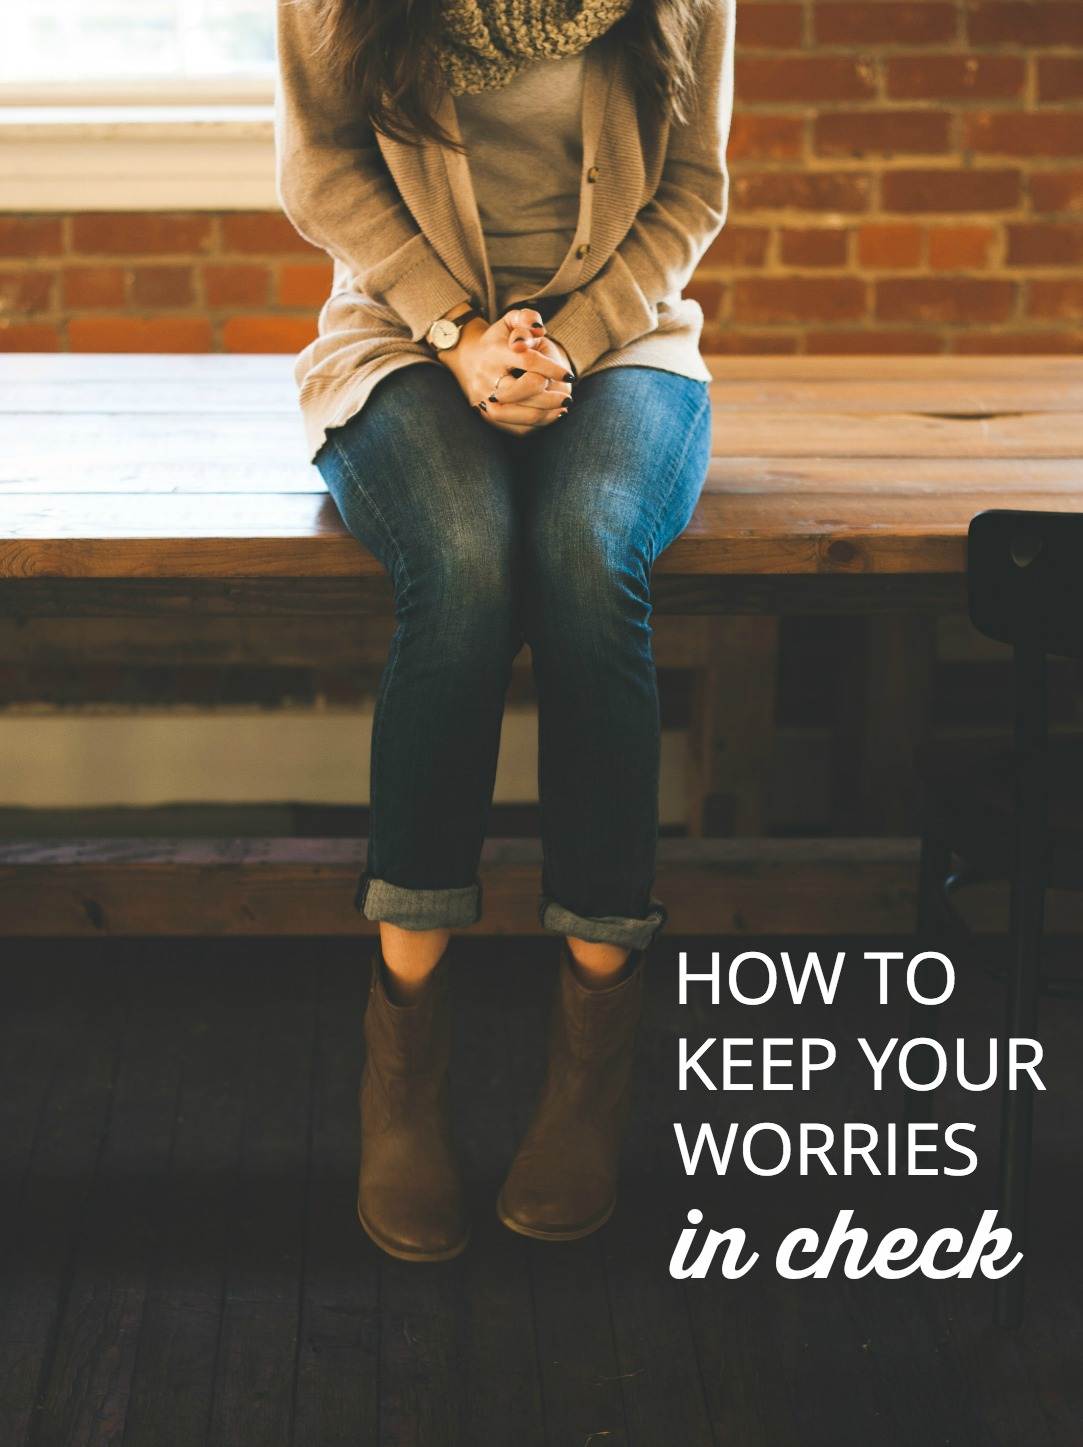 Worrying is part of a parent's job description. But if you feel like you worry too much, here are 4 things you can tell yourself to keep worries in check.